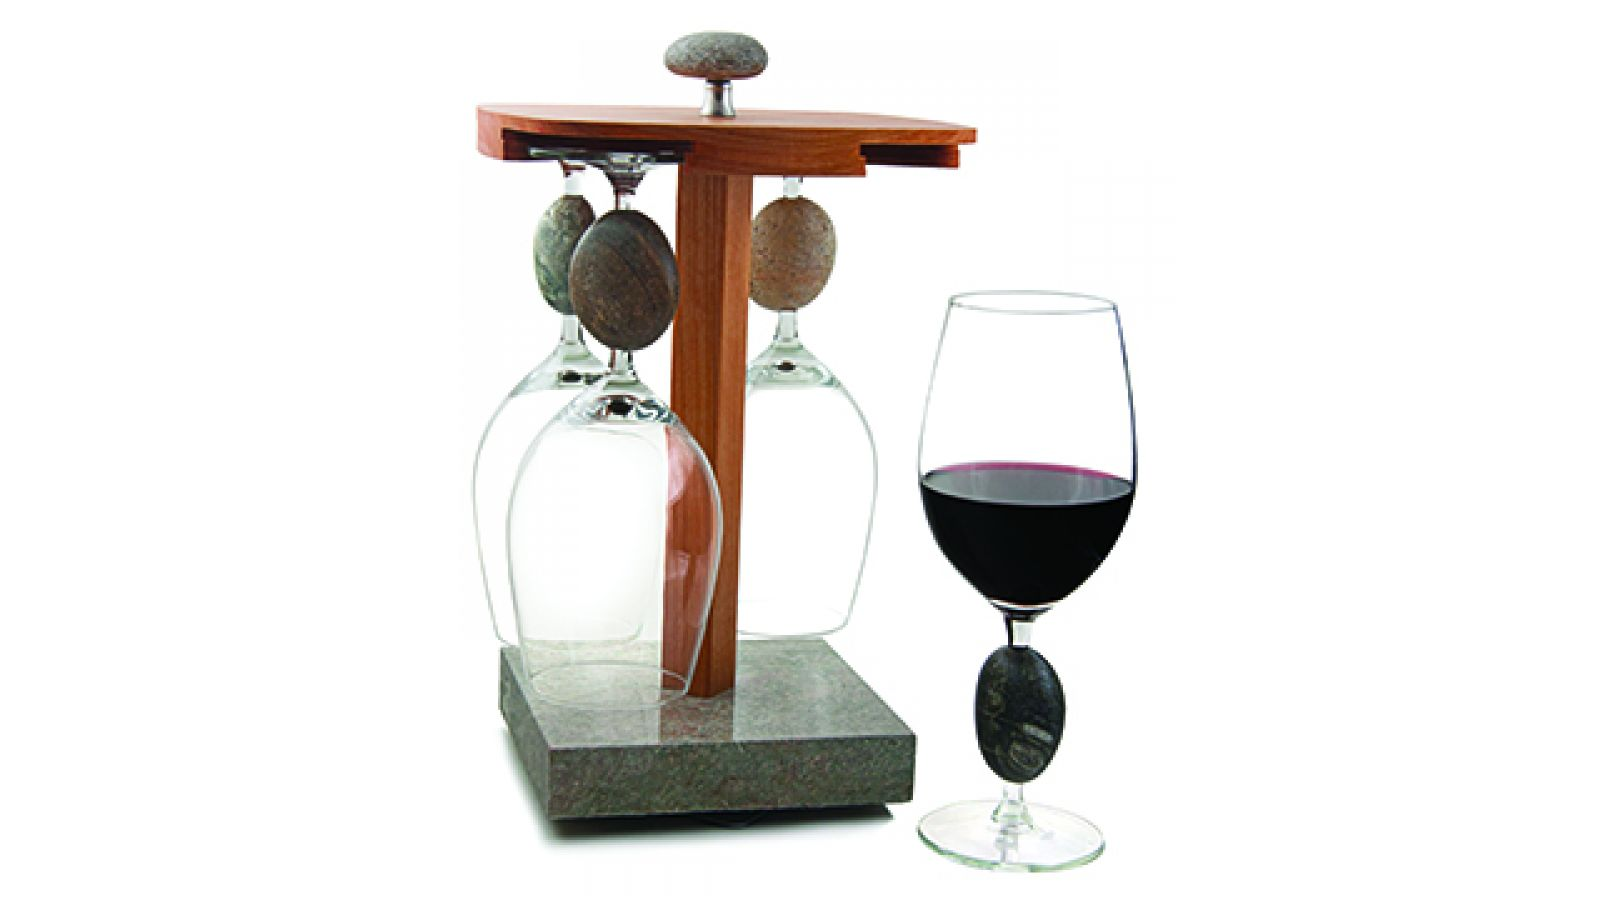 Stone Wine Glasses & Pirouette